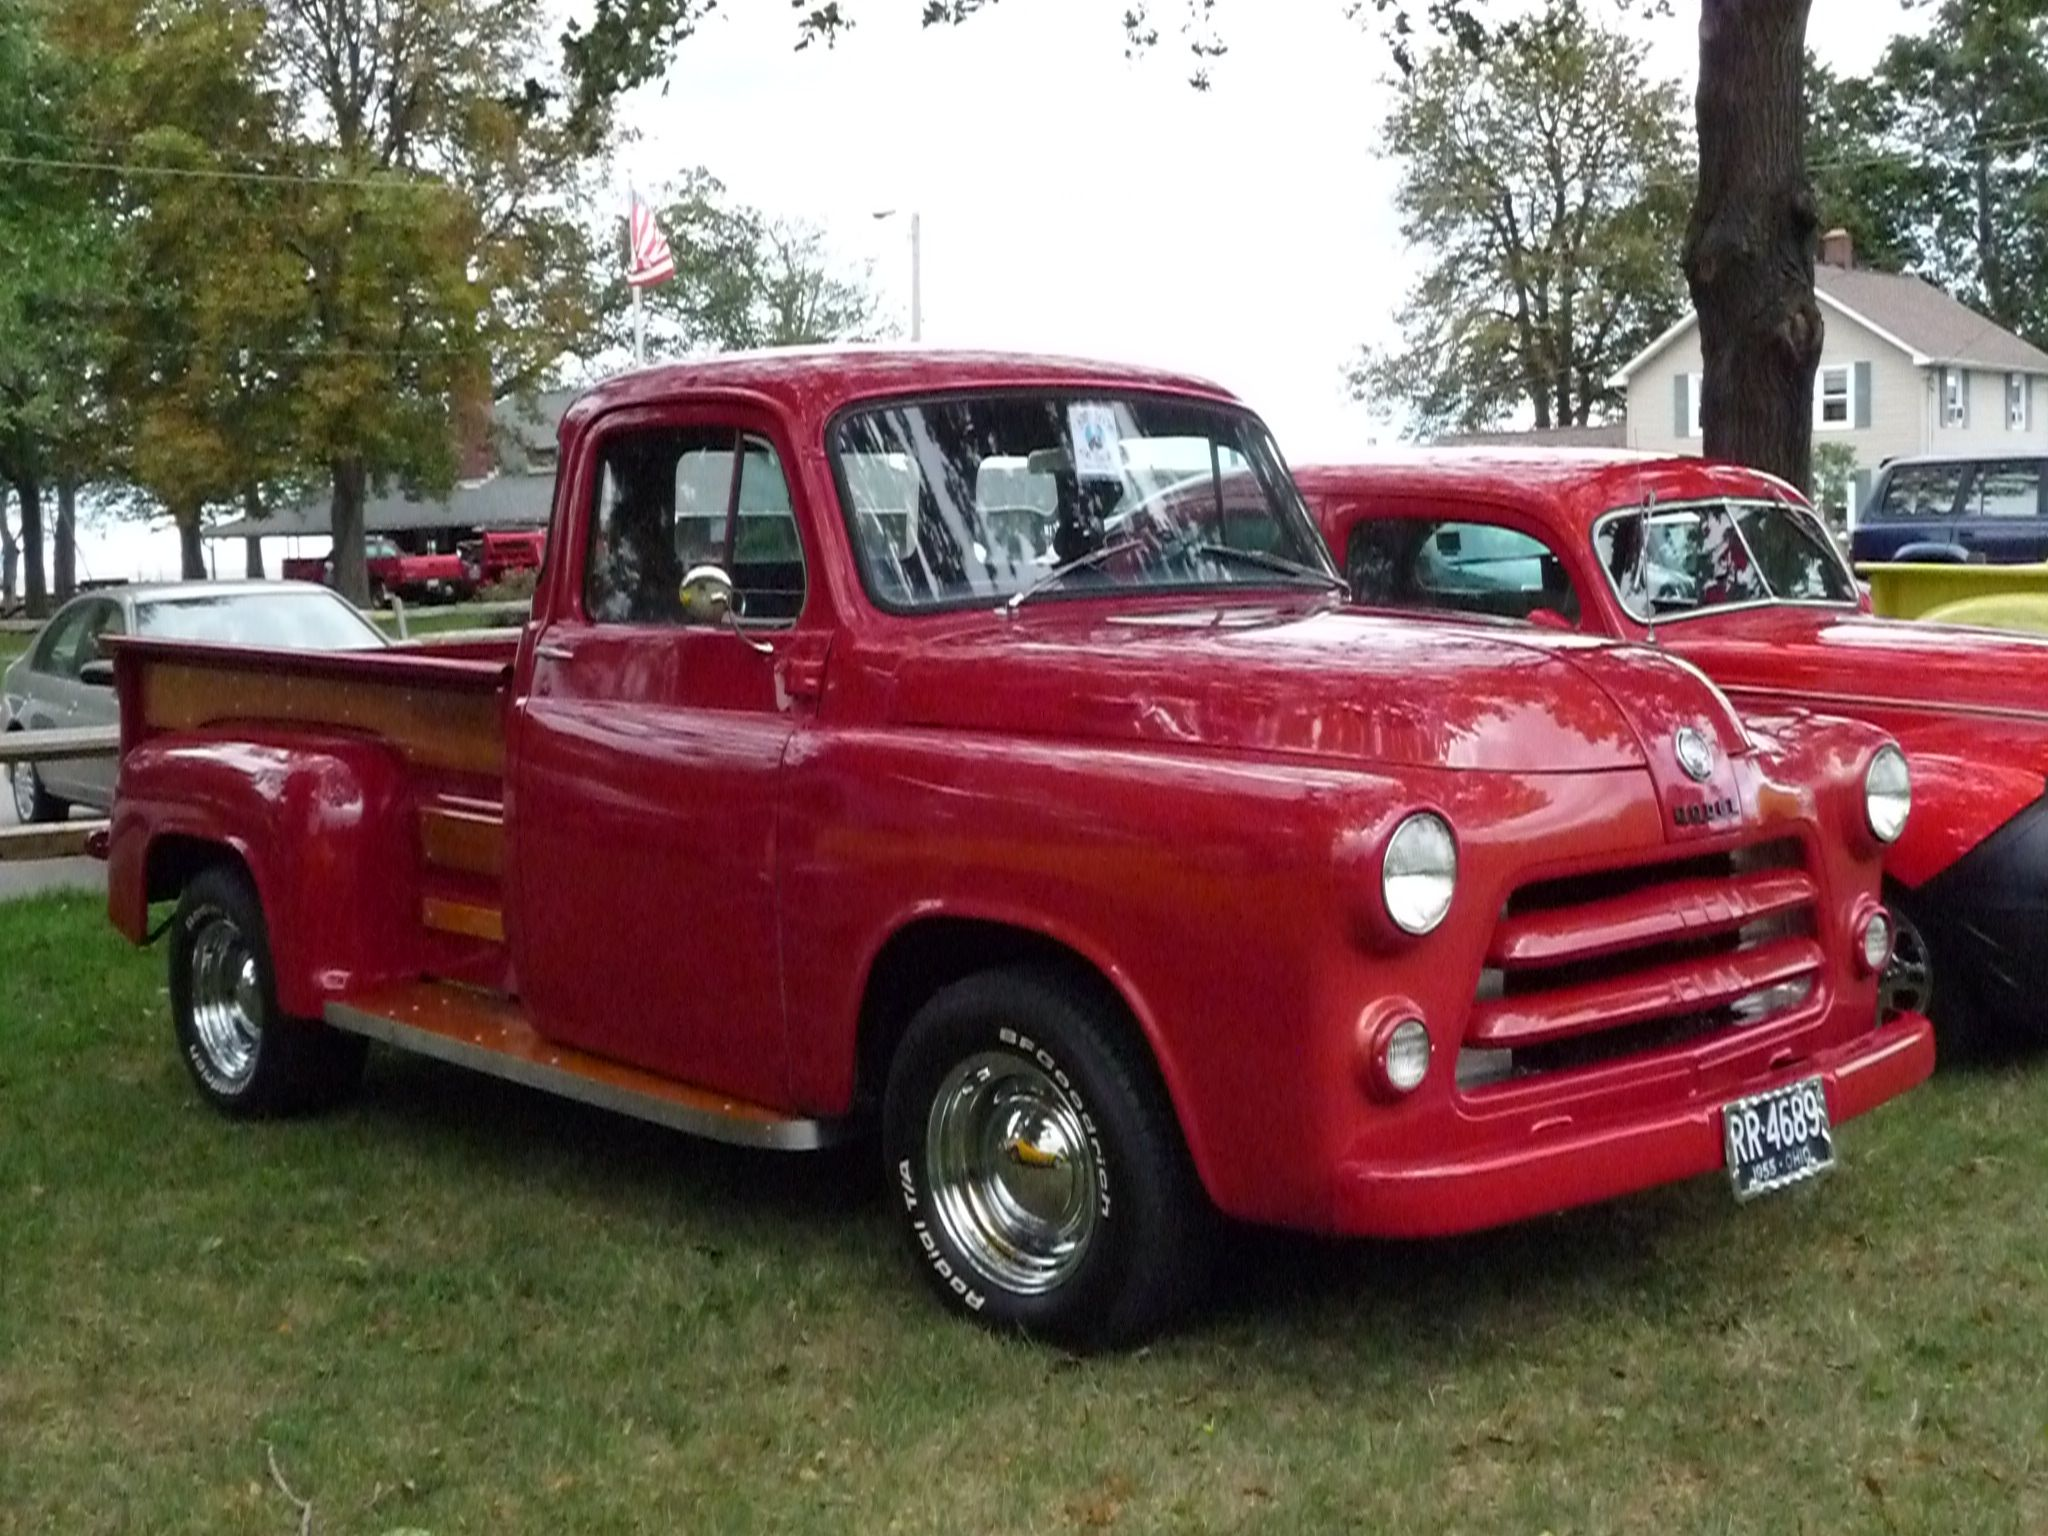 Pretty Old Cars | Cars, Trucks and Antiques